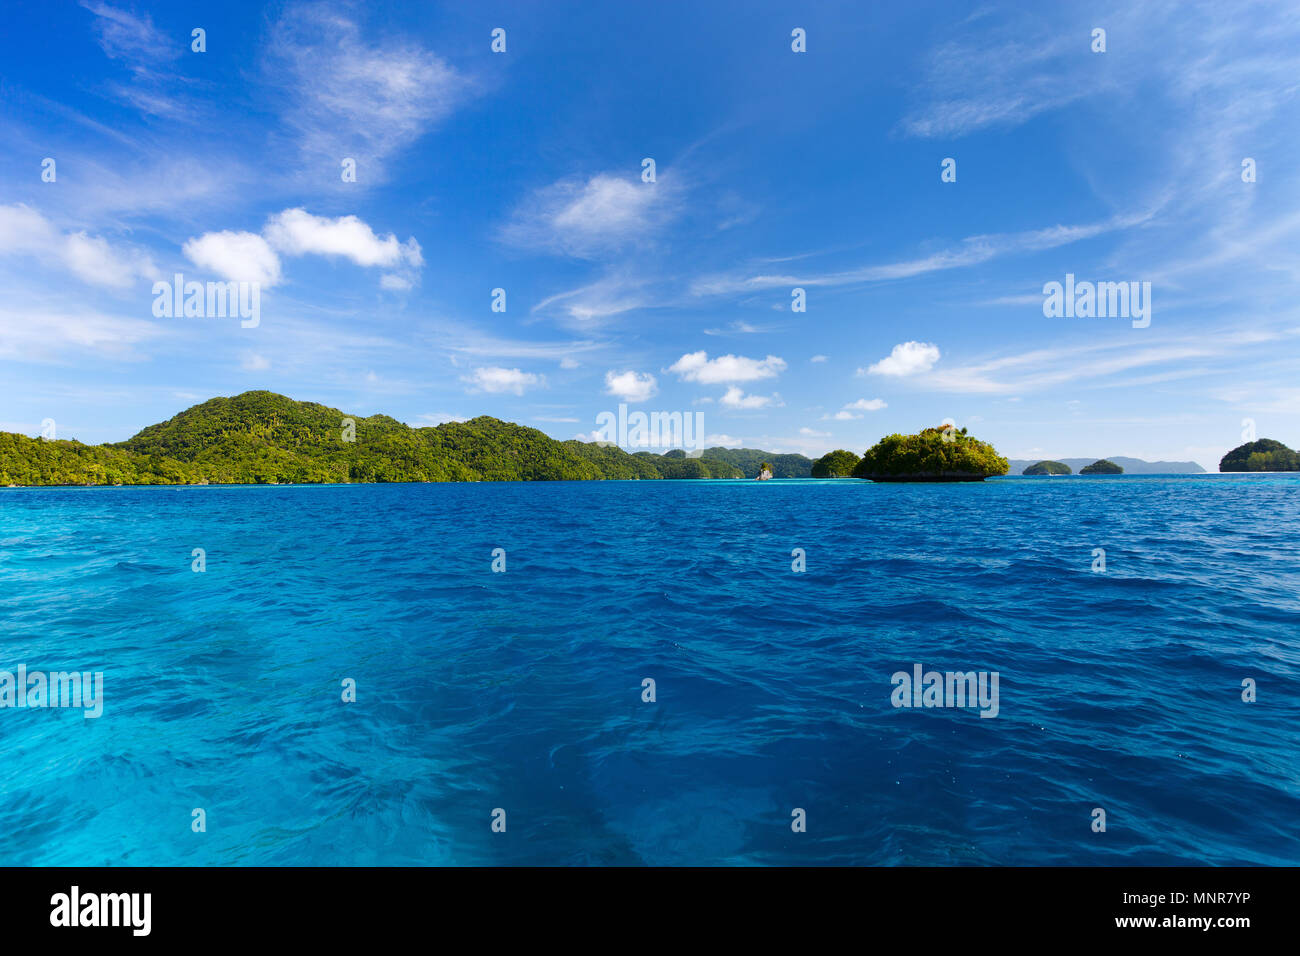 Scenic lagoon of Palau is characterized by hundreds of limestone islands Stock Photo